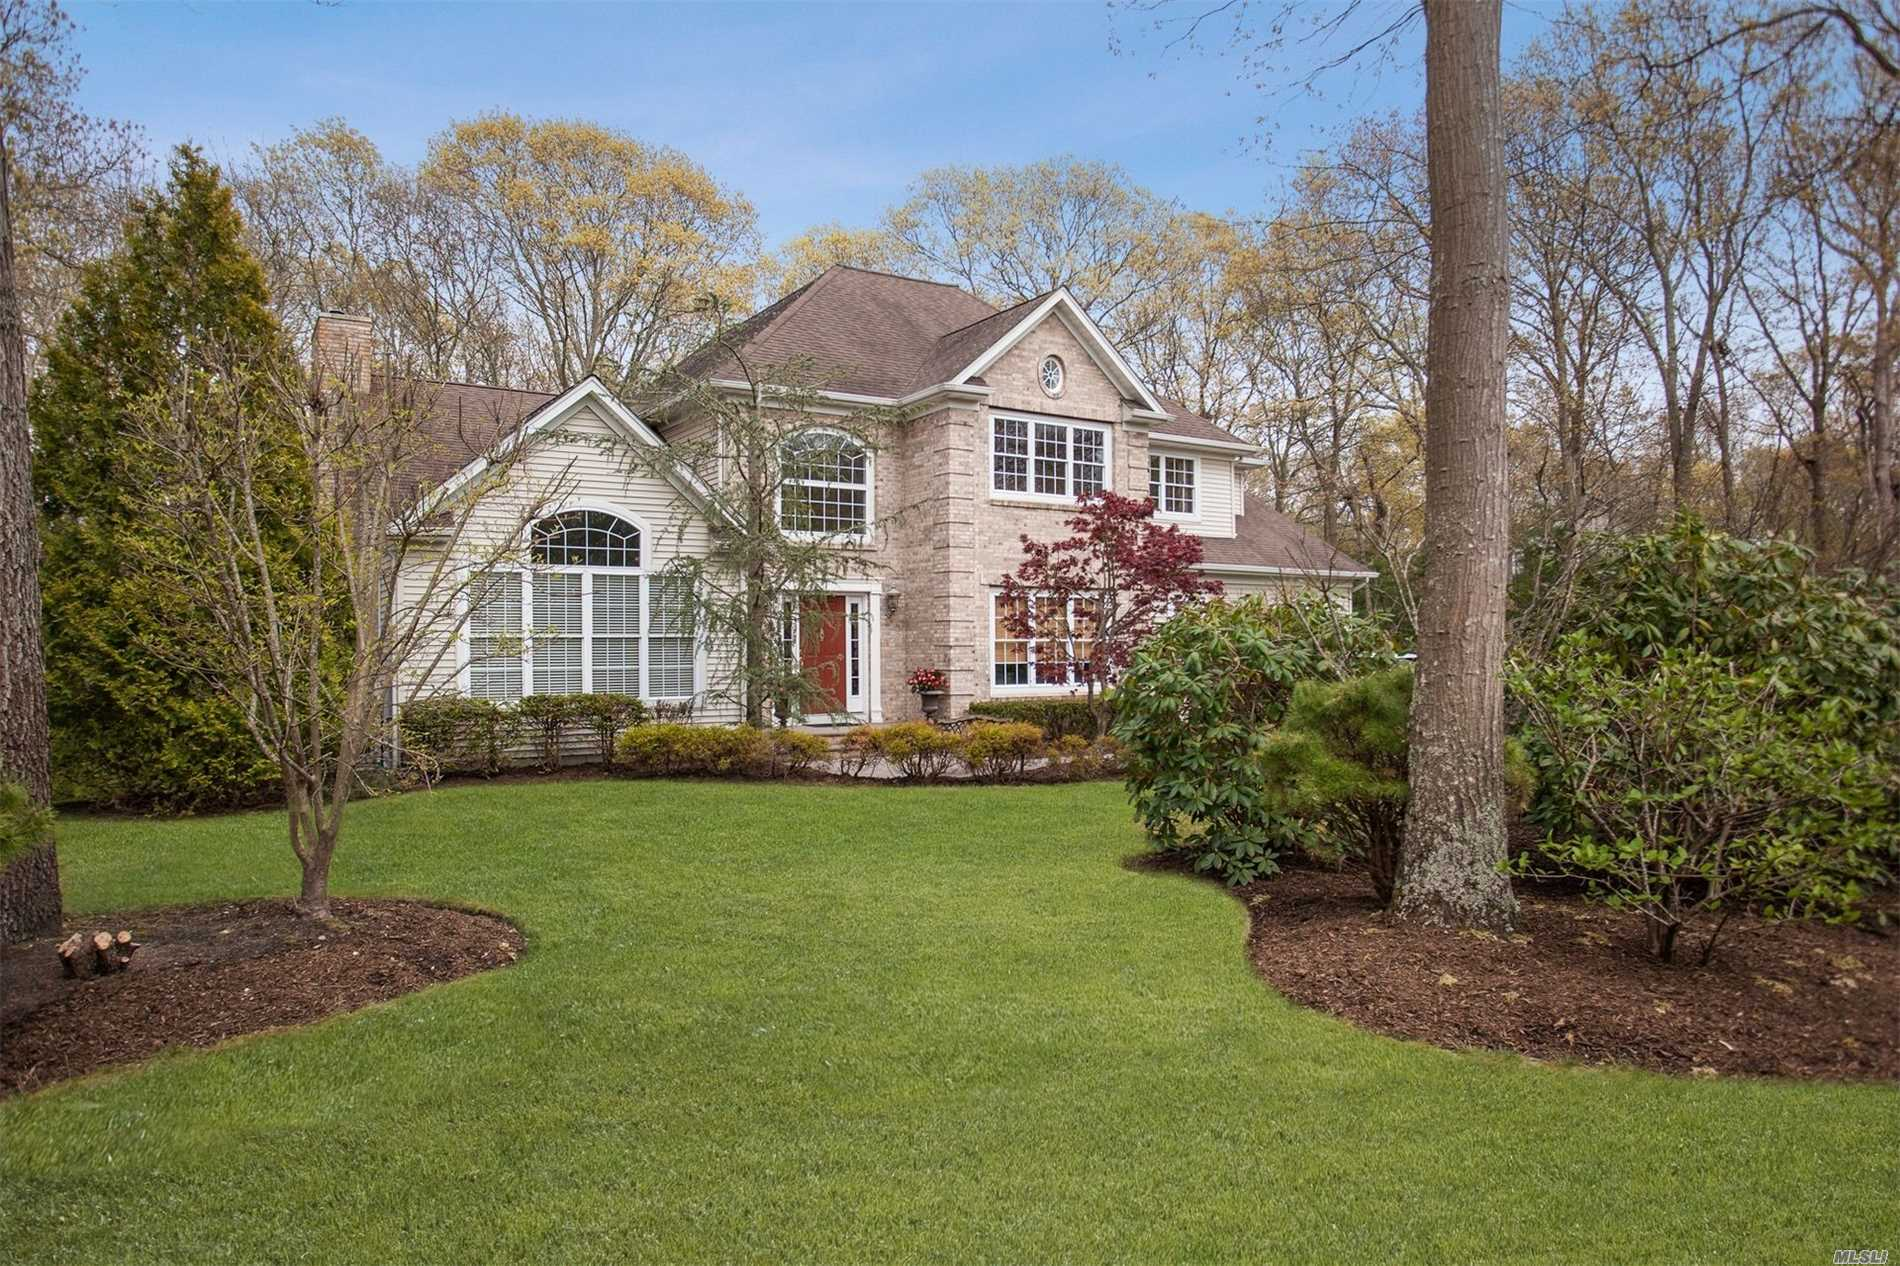 Photo of home for sale at 18 Hickory Ln, East Moriches NY